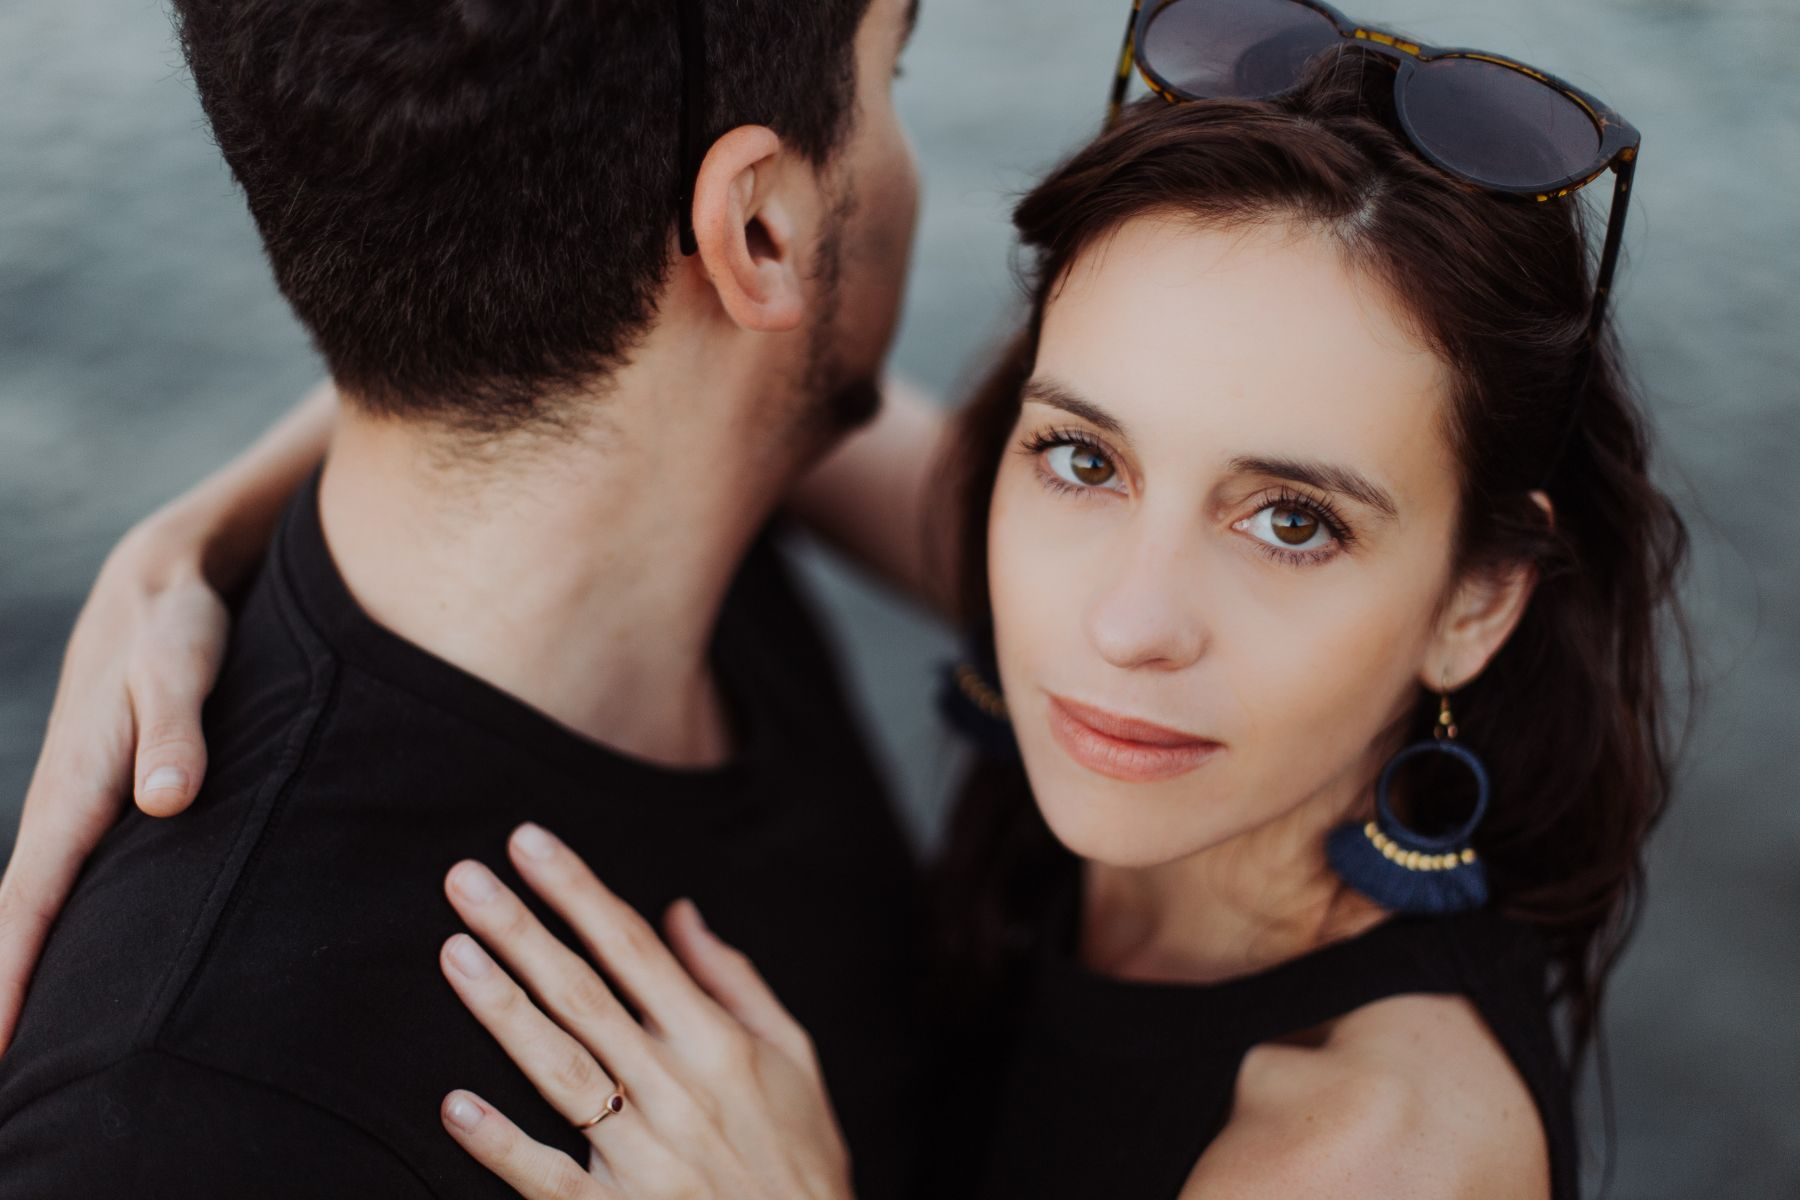 Editorial style engagement photo fo couple in black, man looks away whilst woman stares directly into the camera